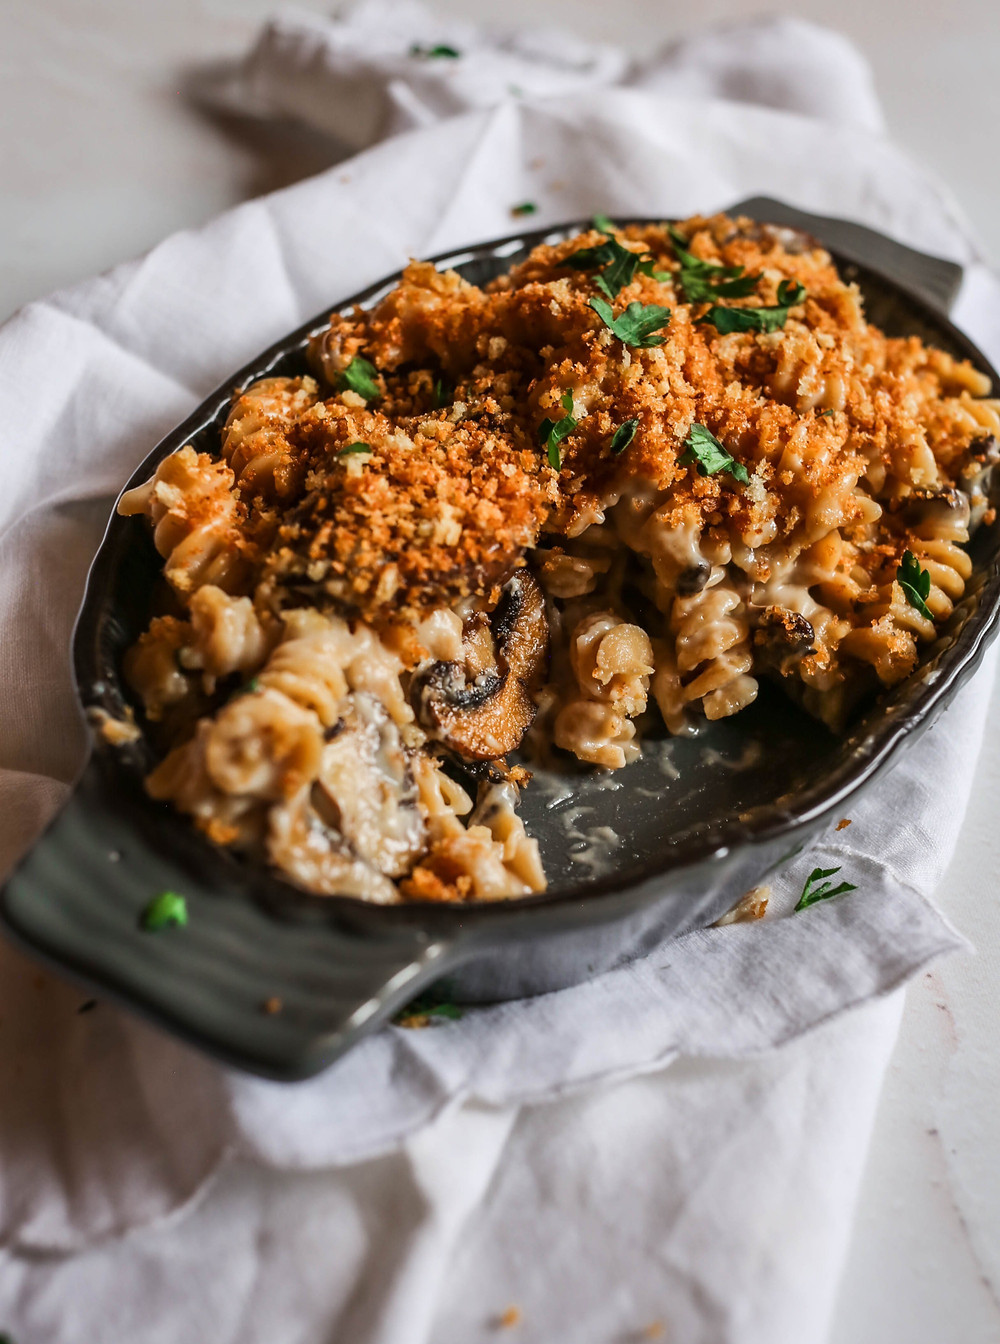 Rotini mac and cheese mixed with mushrooms and topped with garlicky toasted panko bread crumbs.